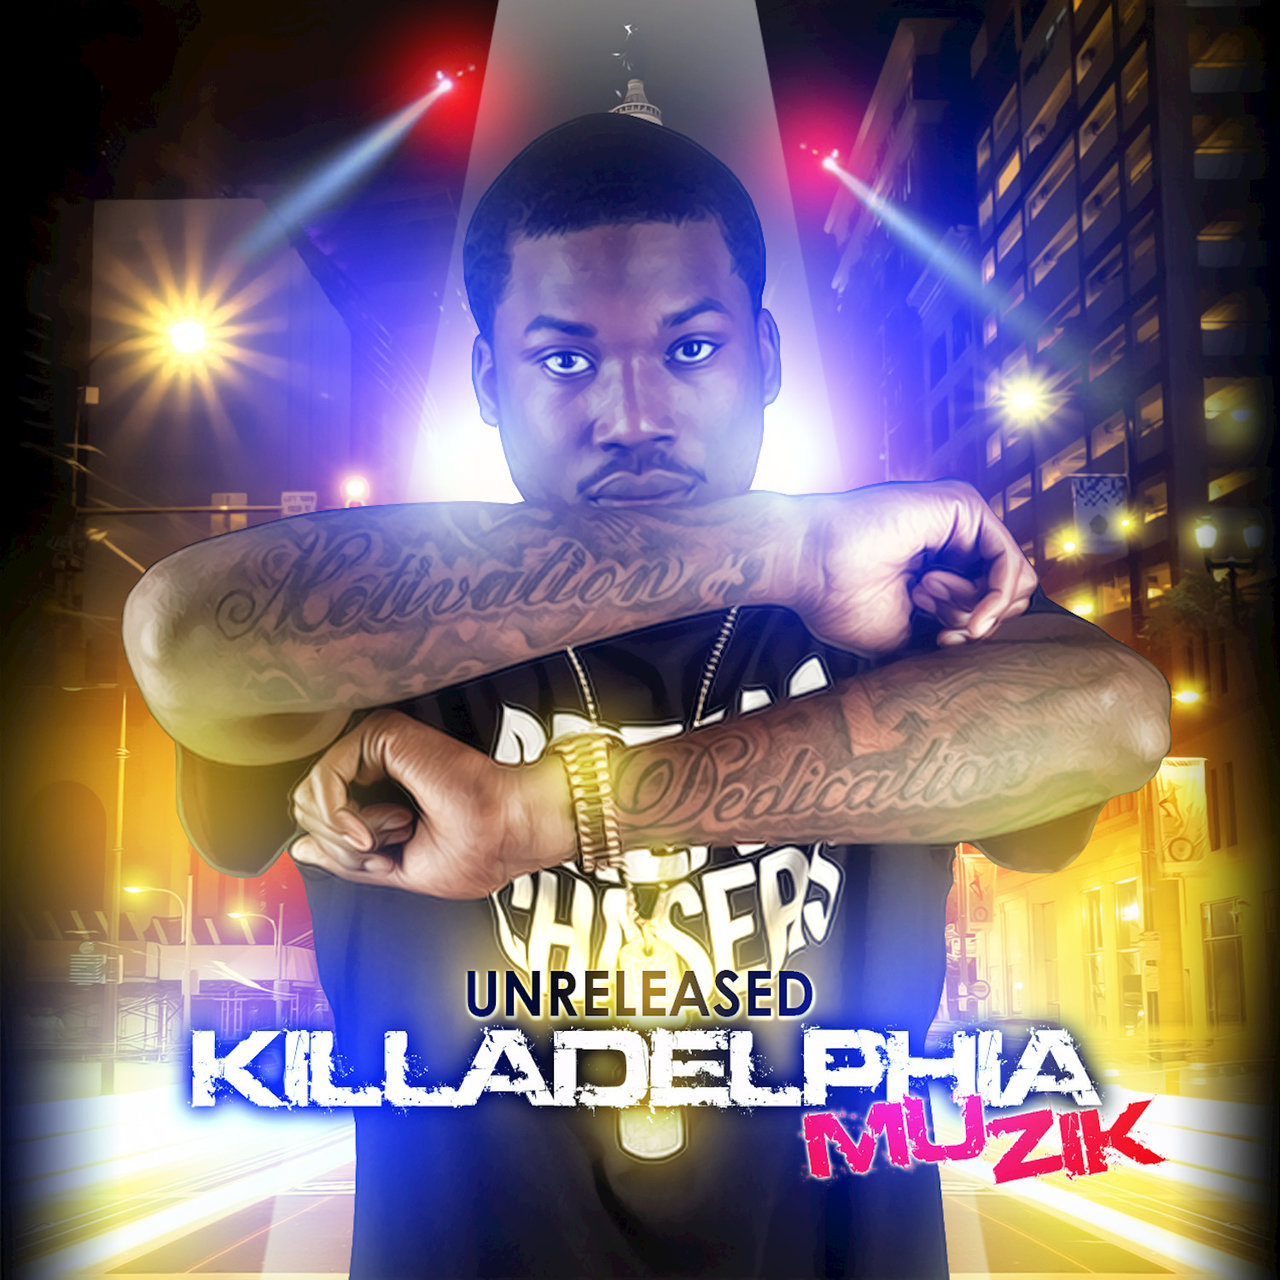 Unreleased Killadelphia Muzik